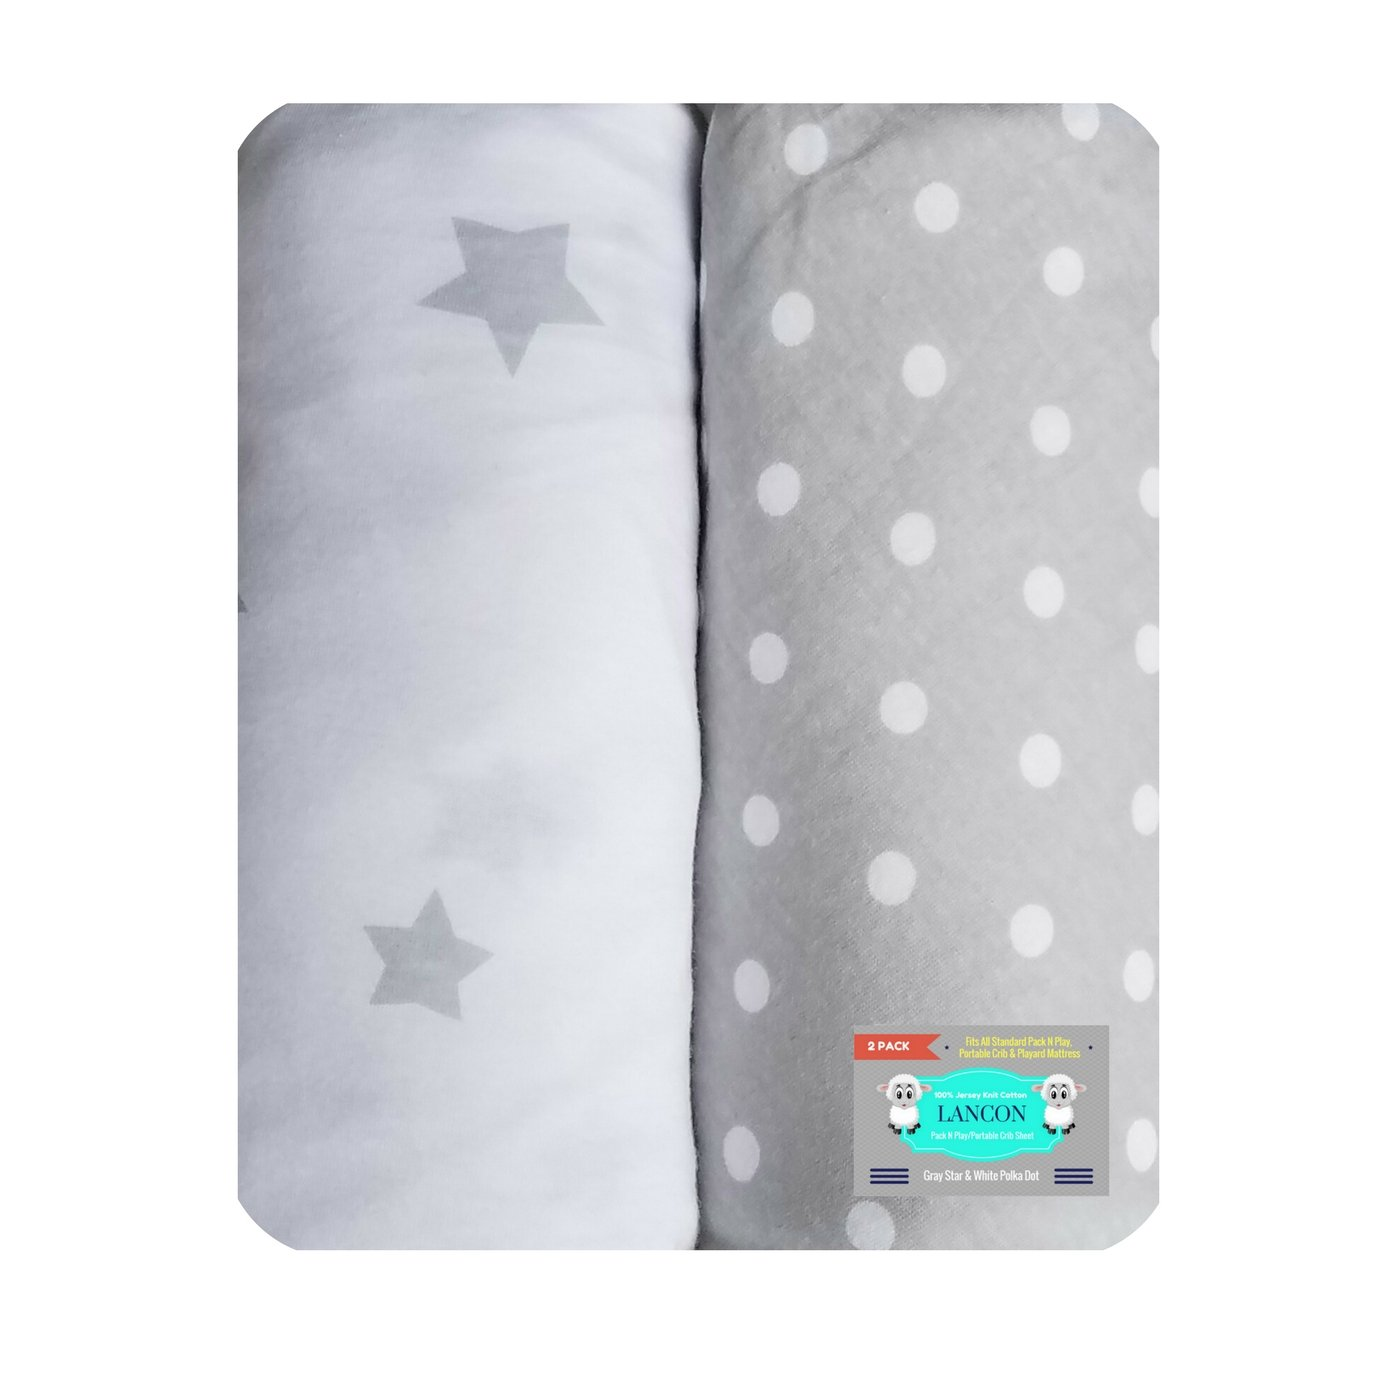 Pack N Play Portable Crib Sheet Set by LANCON Kids - 2 Pack of Ultra Soft, Premium 100% Jersey Knit Cotton Fitted Sheets (Gray Star/White Polka Dot)